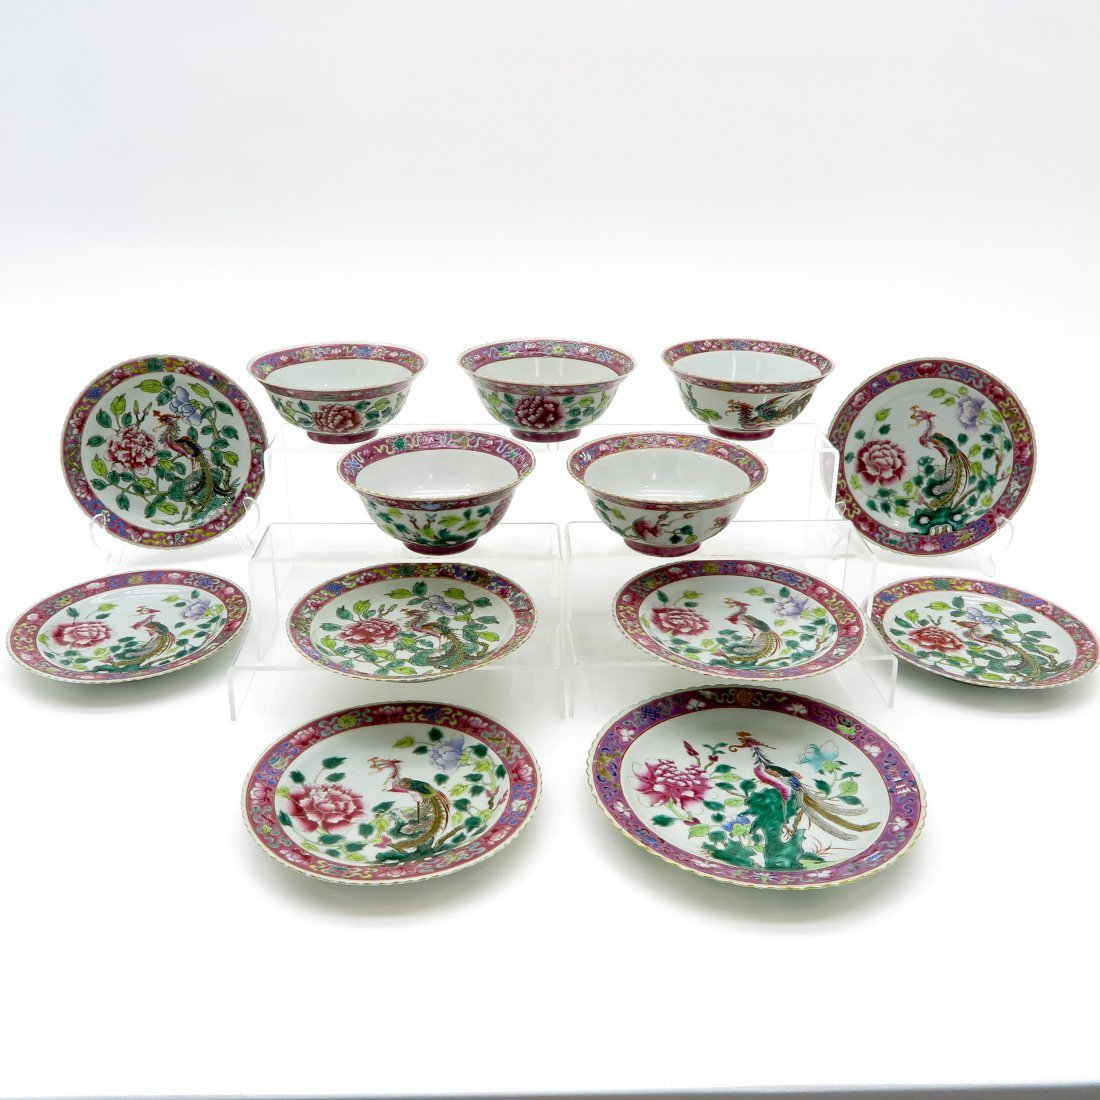 A Large Lot of 19th Cent. Famille Rose China Porcelain